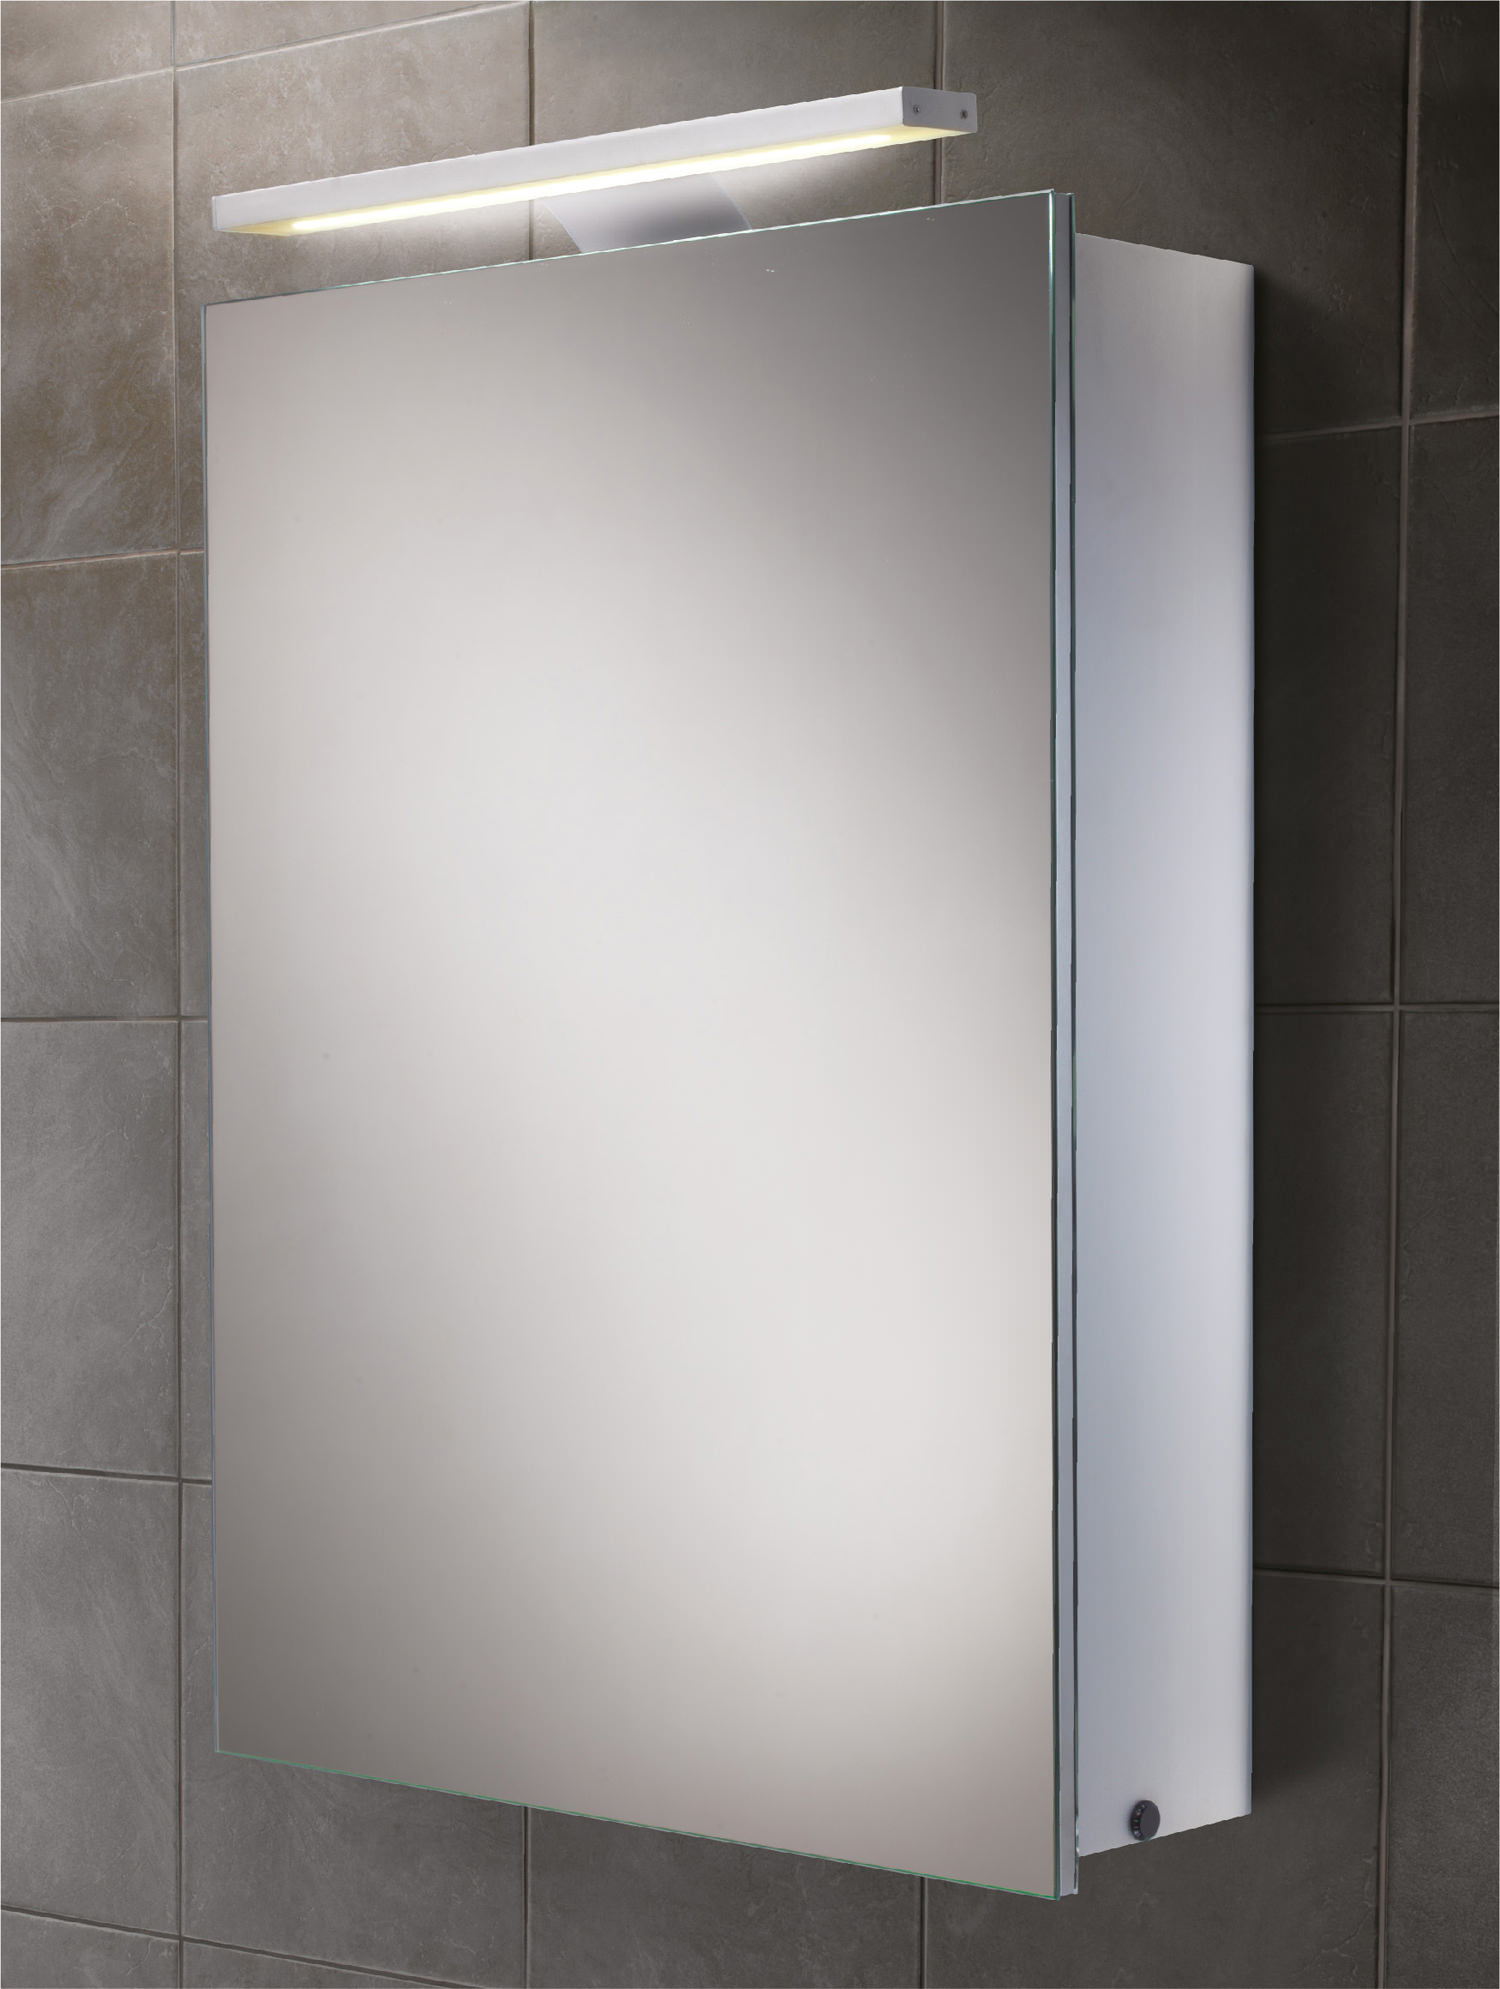 led bathroom cabinets hib orbital steam free led illuminated aluminium mirrored 13426